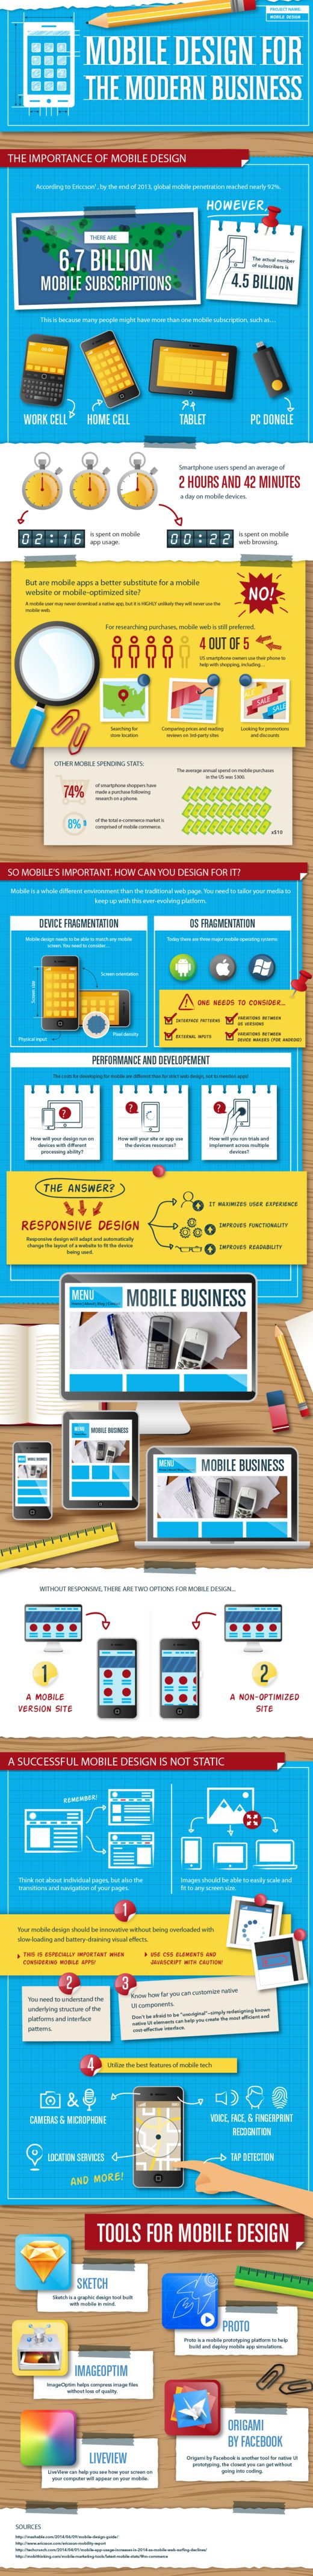 The importance of mobile website design. What to do and why to do it.